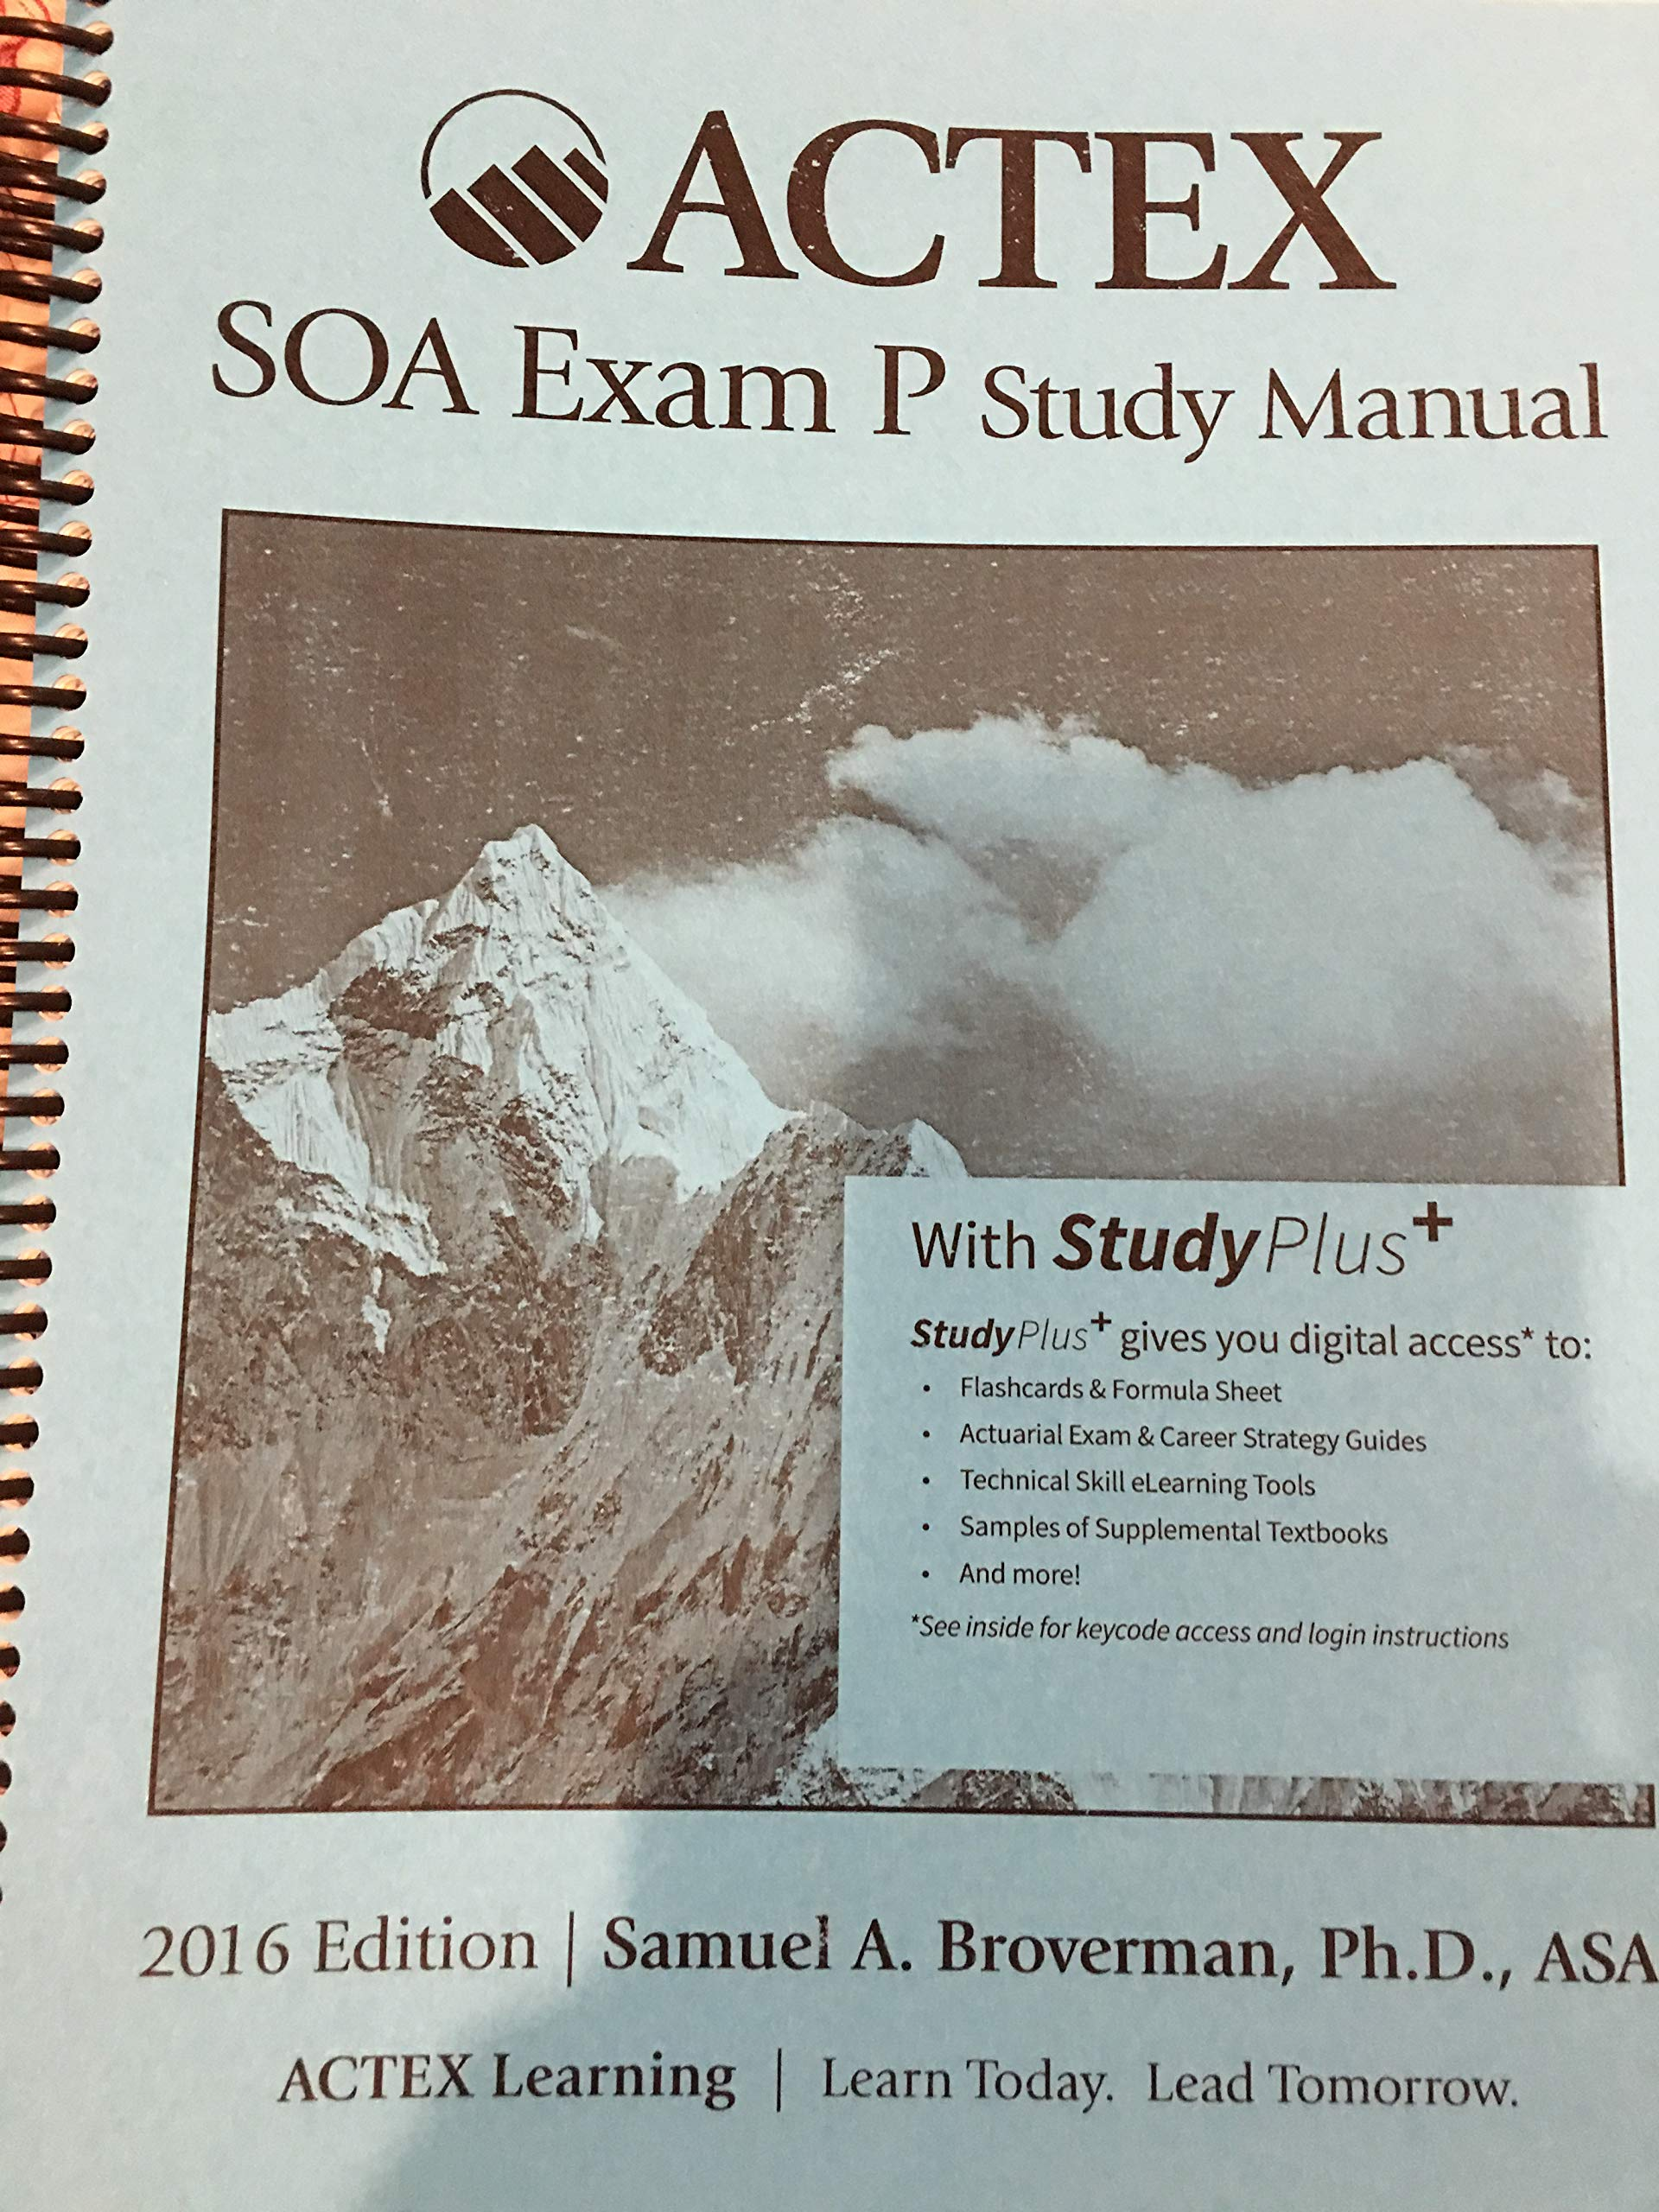 ACTEX SOA Exam P Study Manual: Samuel A. Broverman: 9781635880885:  Amazon.com: Books